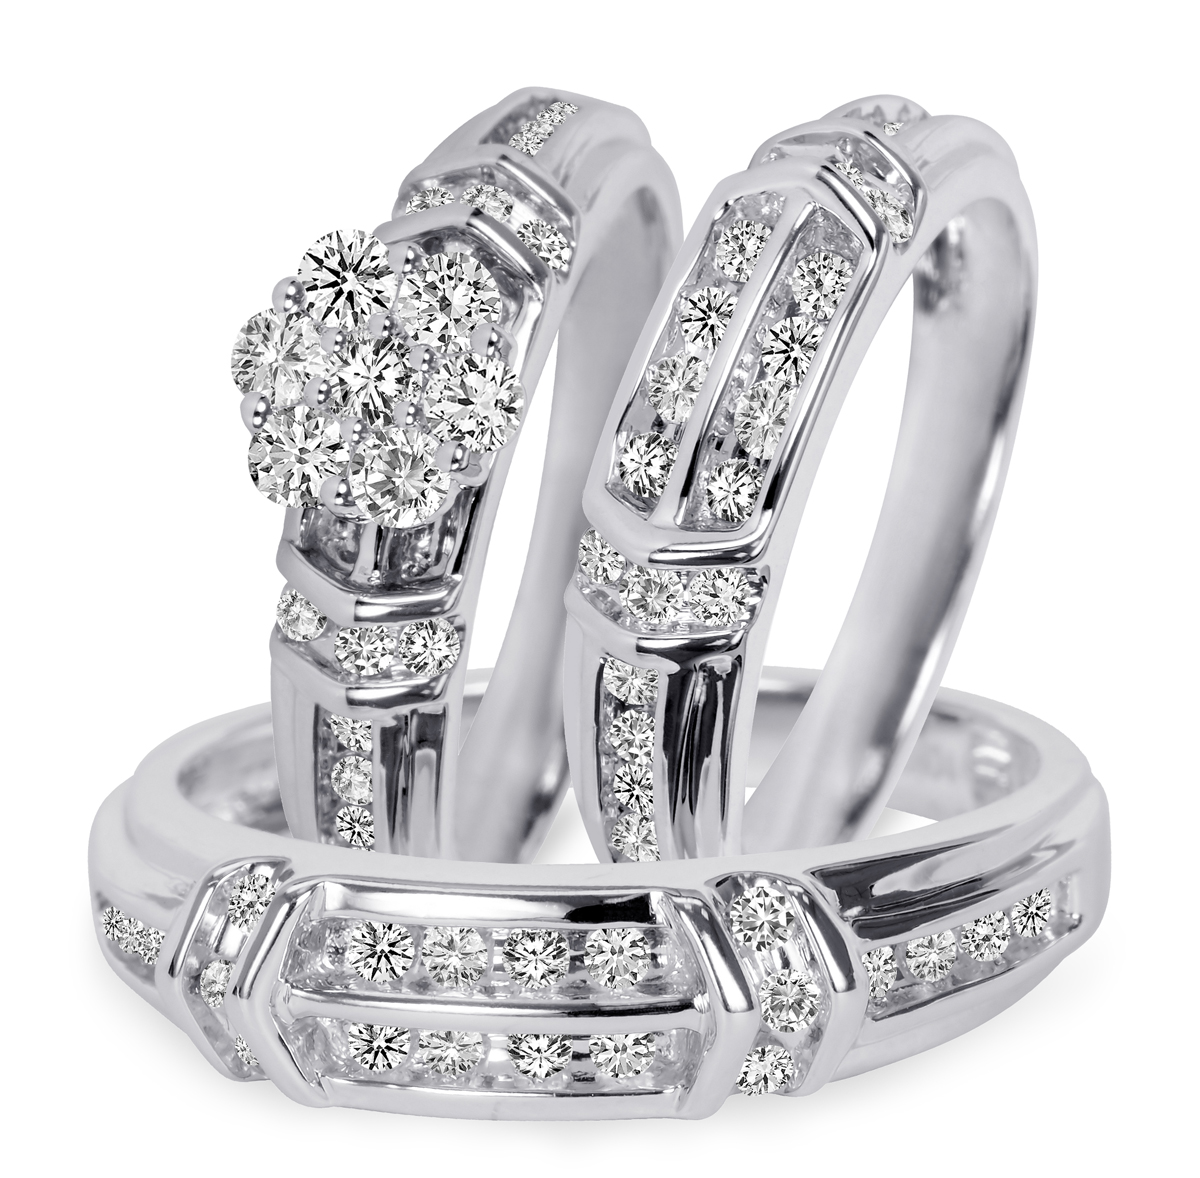 1 1 10 carat t w diamond trio matching wedding ring set 14k white gold my trio rings bt503w14k. Black Bedroom Furniture Sets. Home Design Ideas